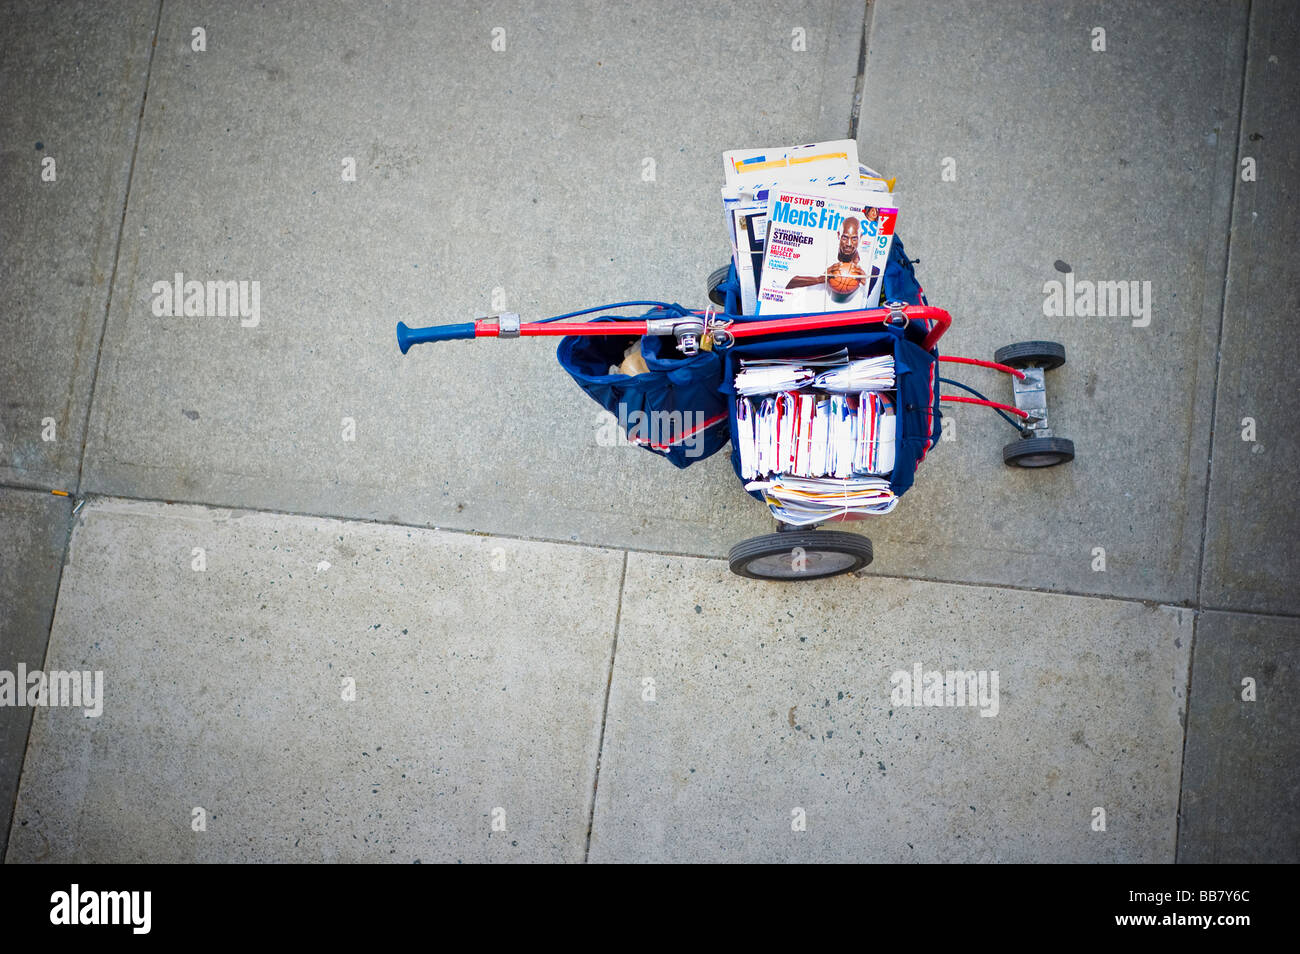 United States Postal Service (USPS) Mail Deliver Cart, High Angle View (For Editorial Use Only) - Stock Image